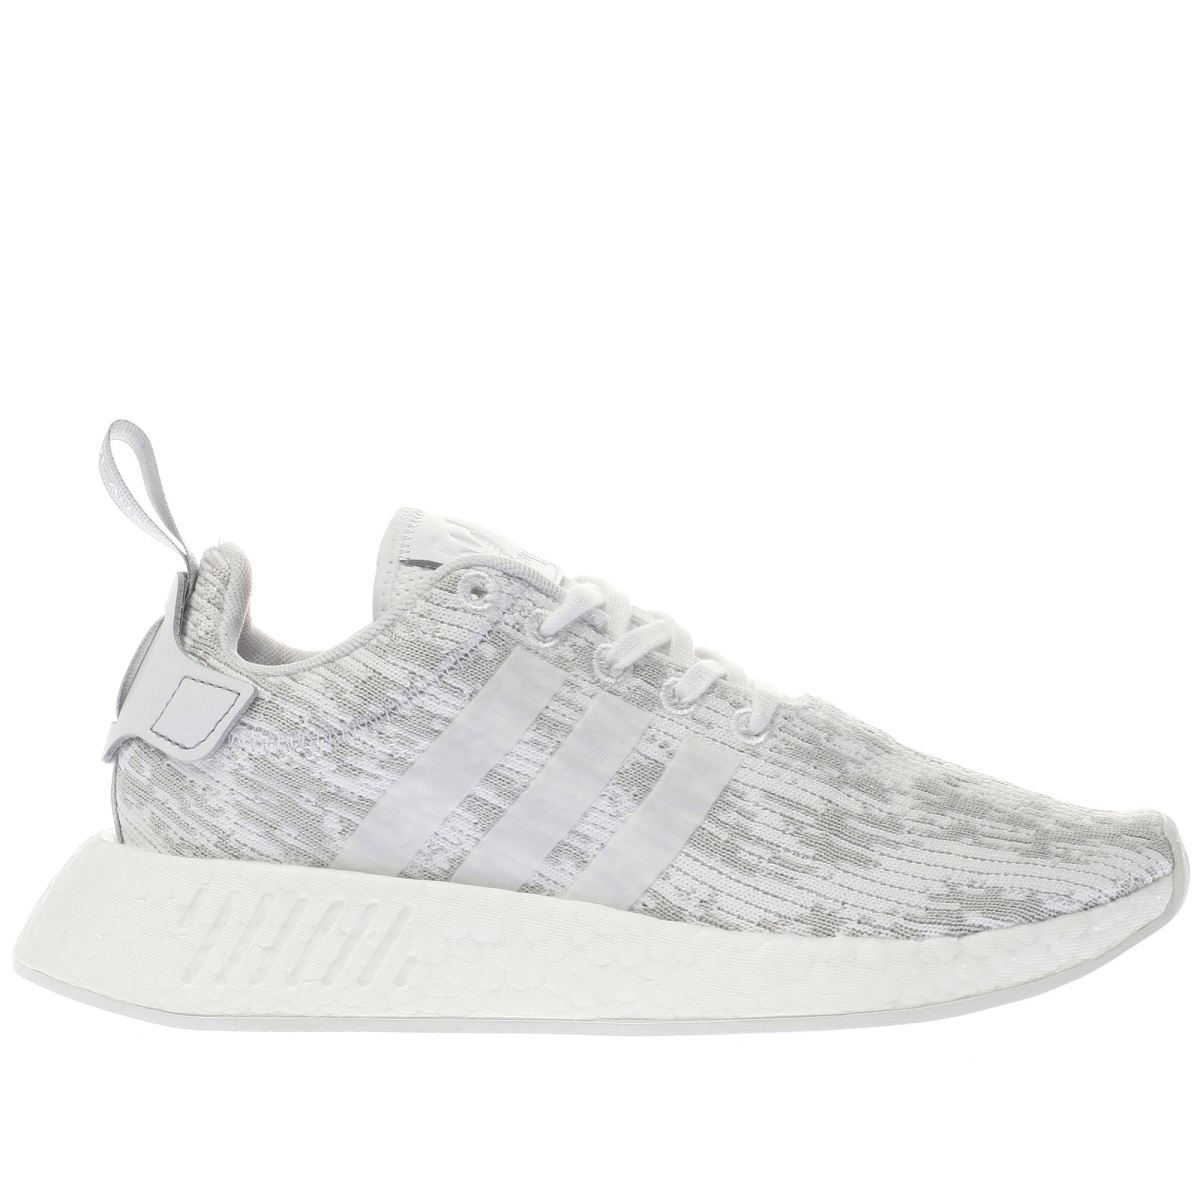 adidas white & grey nmd_r2 trainers